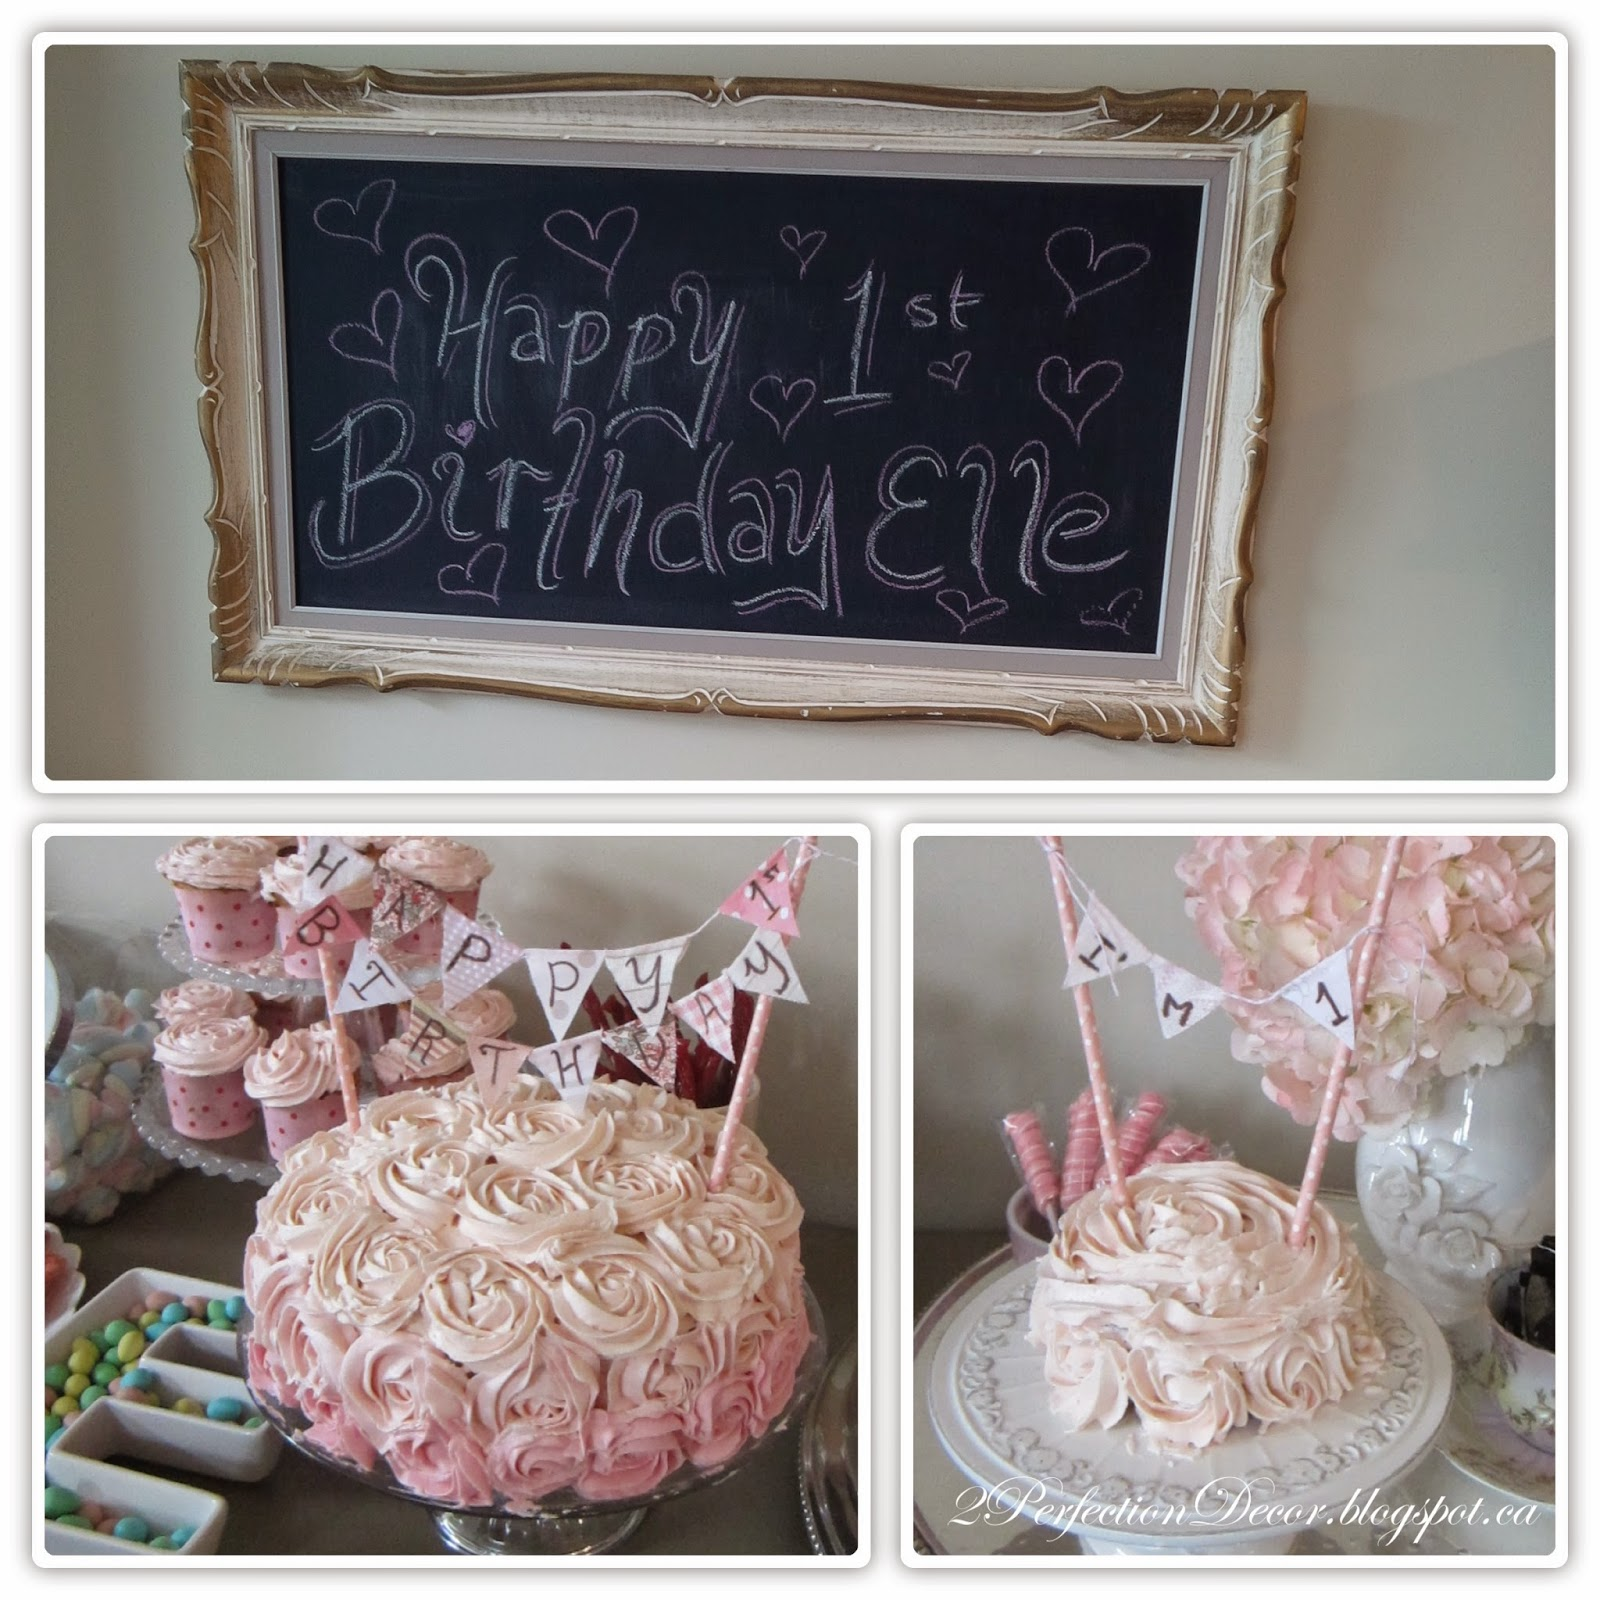 2perfection Decor Shabby Chic 1st Birthday Party